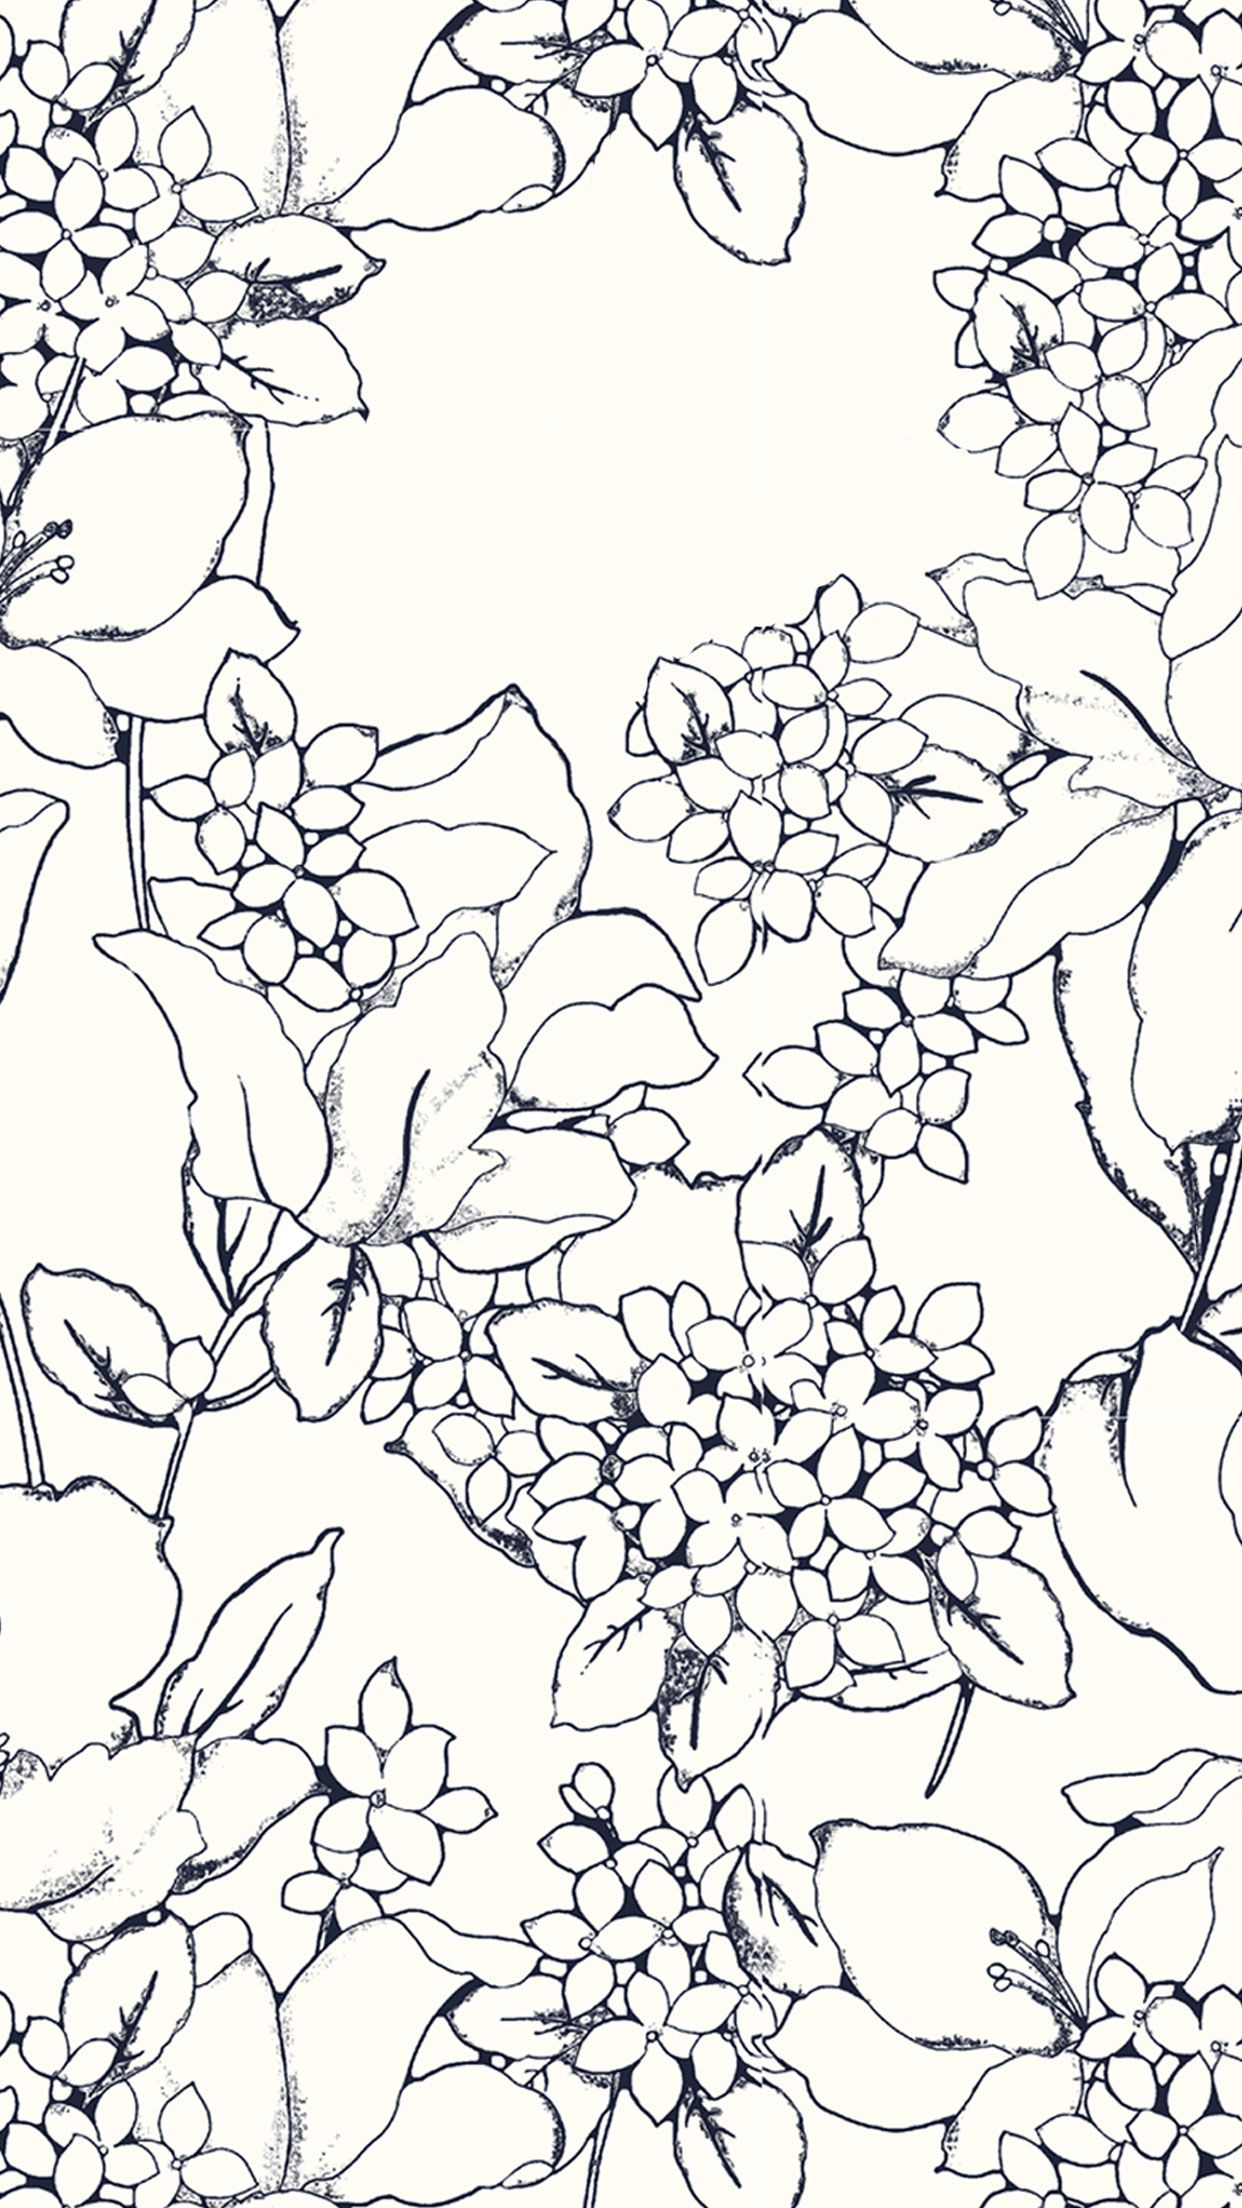 Blue and white floral pattern design ideas and inspiration. Love this print.